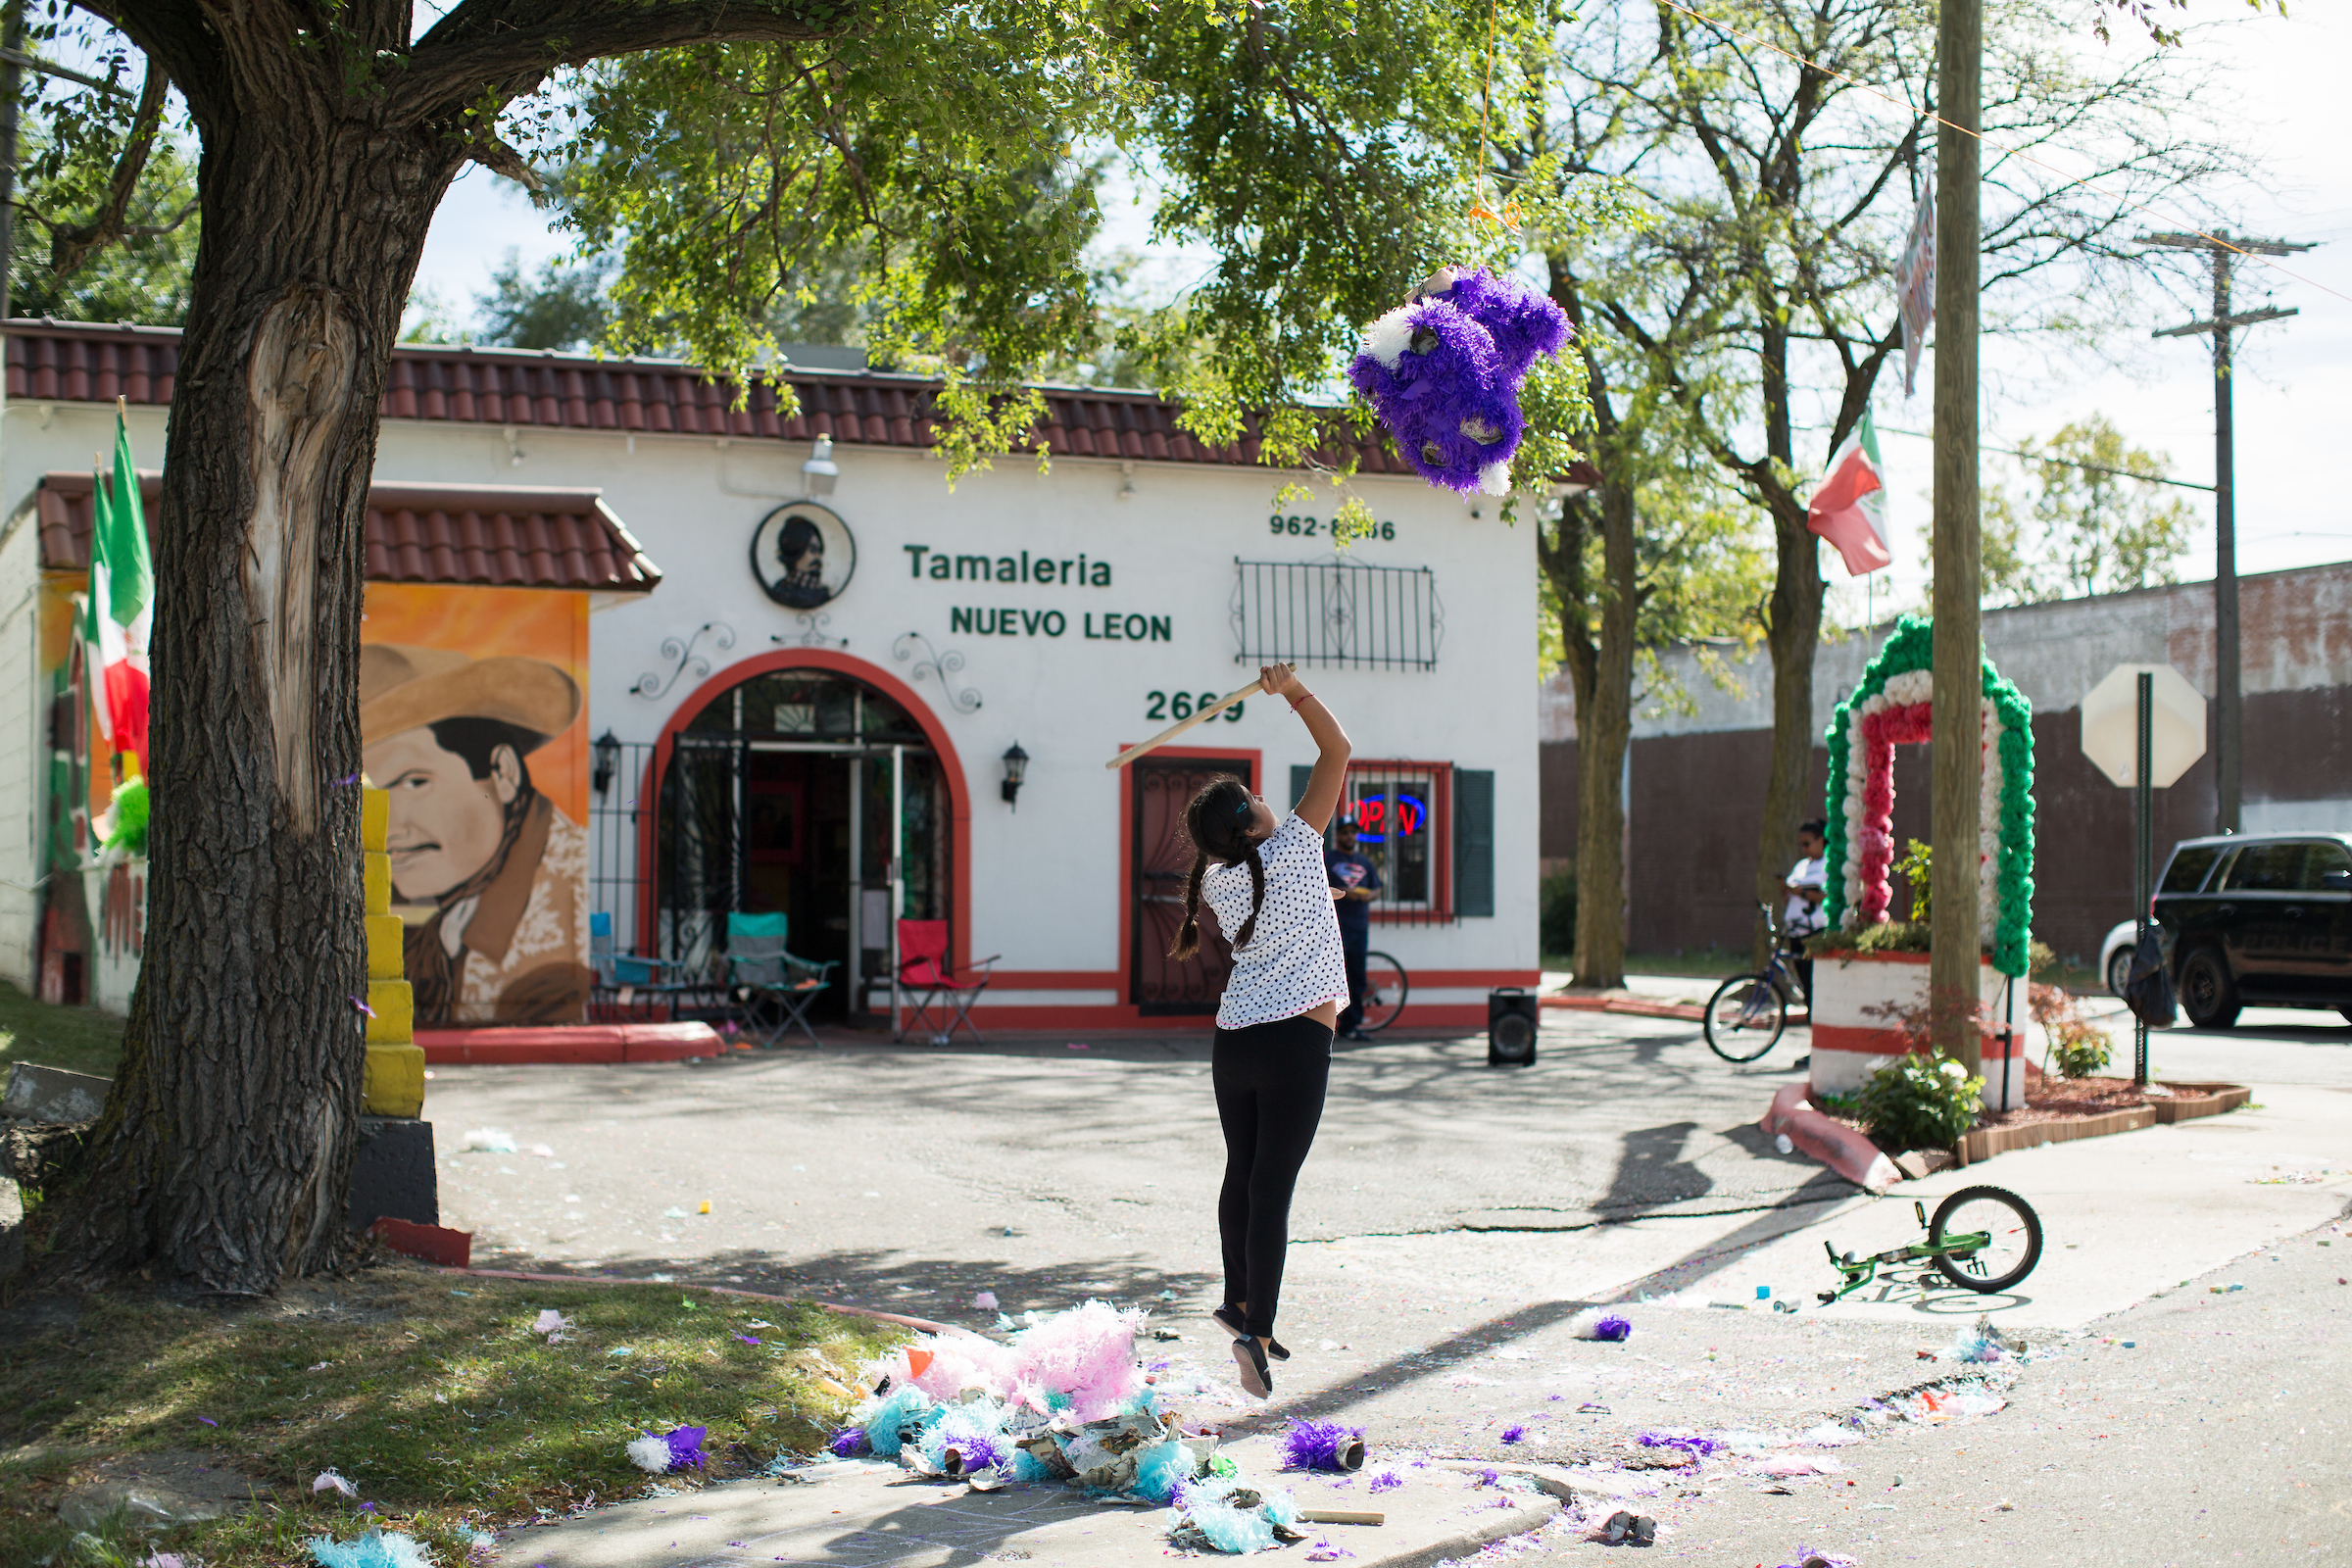 A girl in a white shirt and black jeans is shown mid-air jumping to hit a purple piñata in front of the white and red Tamaleria Nuevo Leon restaurant.